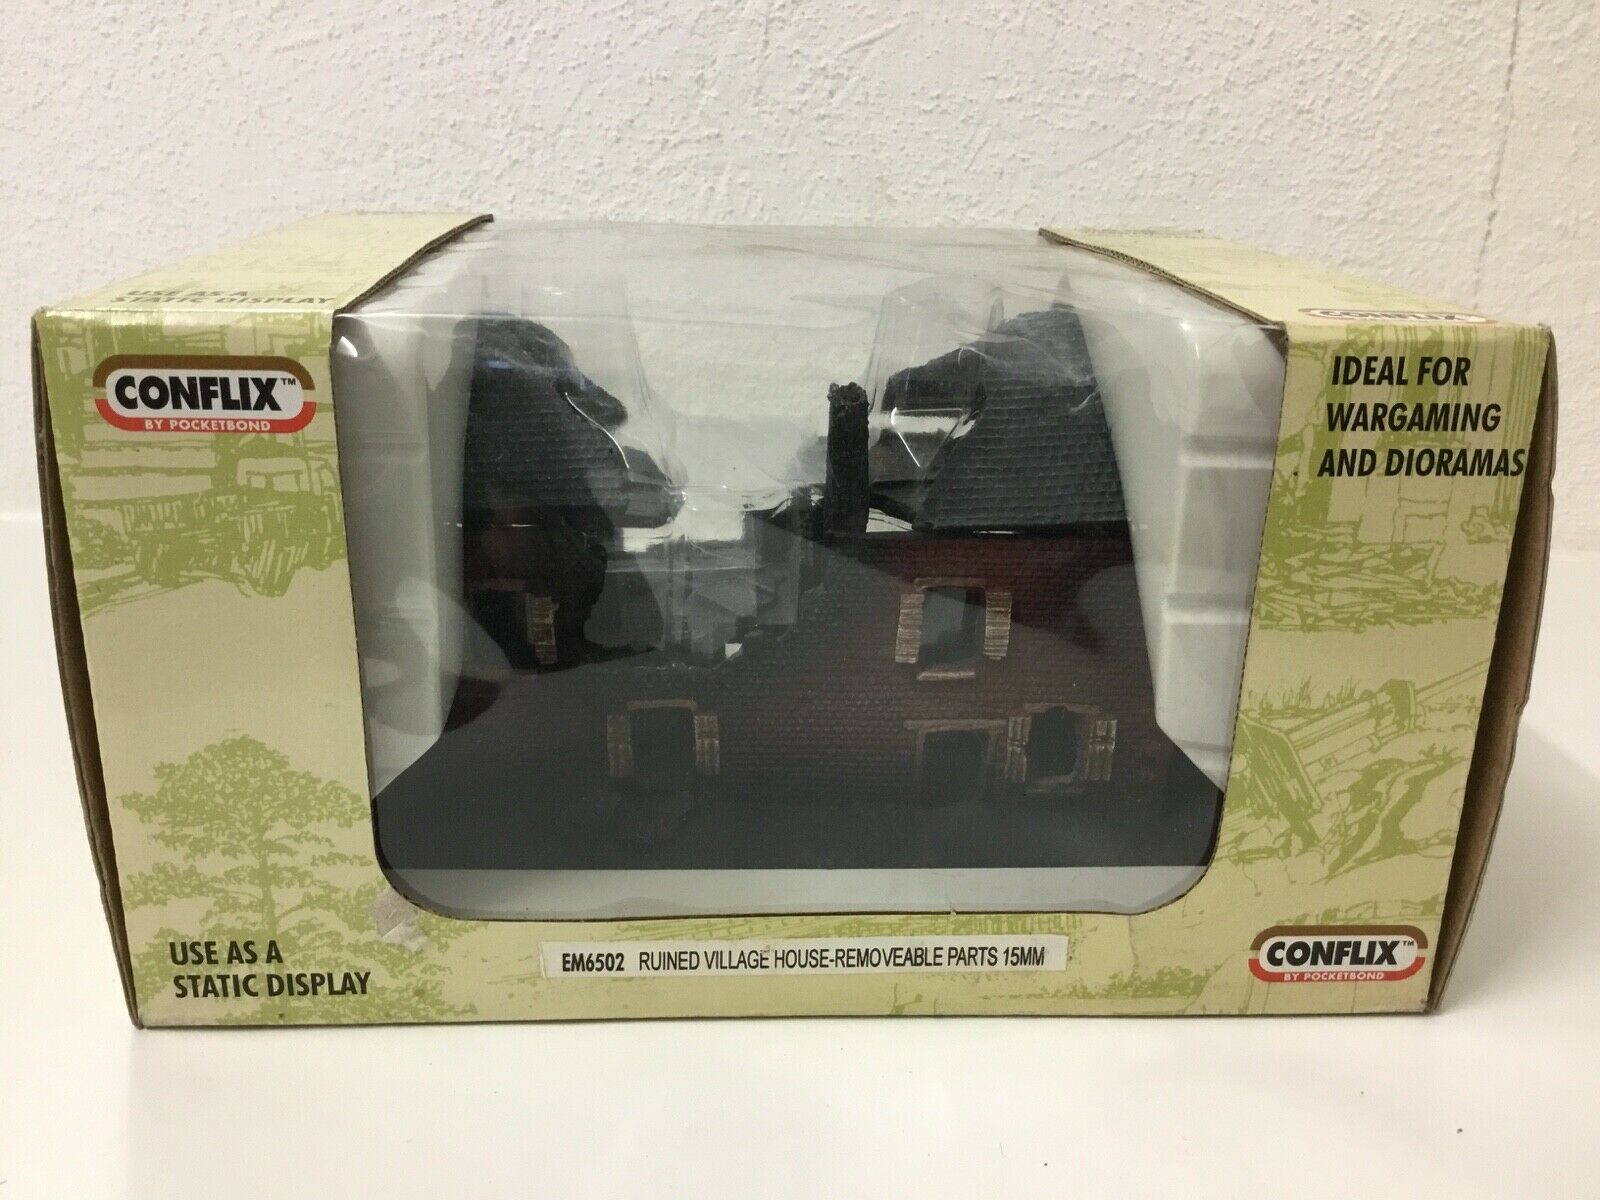 Conflix RUINED VILLAGE HOUSE  15mm Wargaming & Diorama